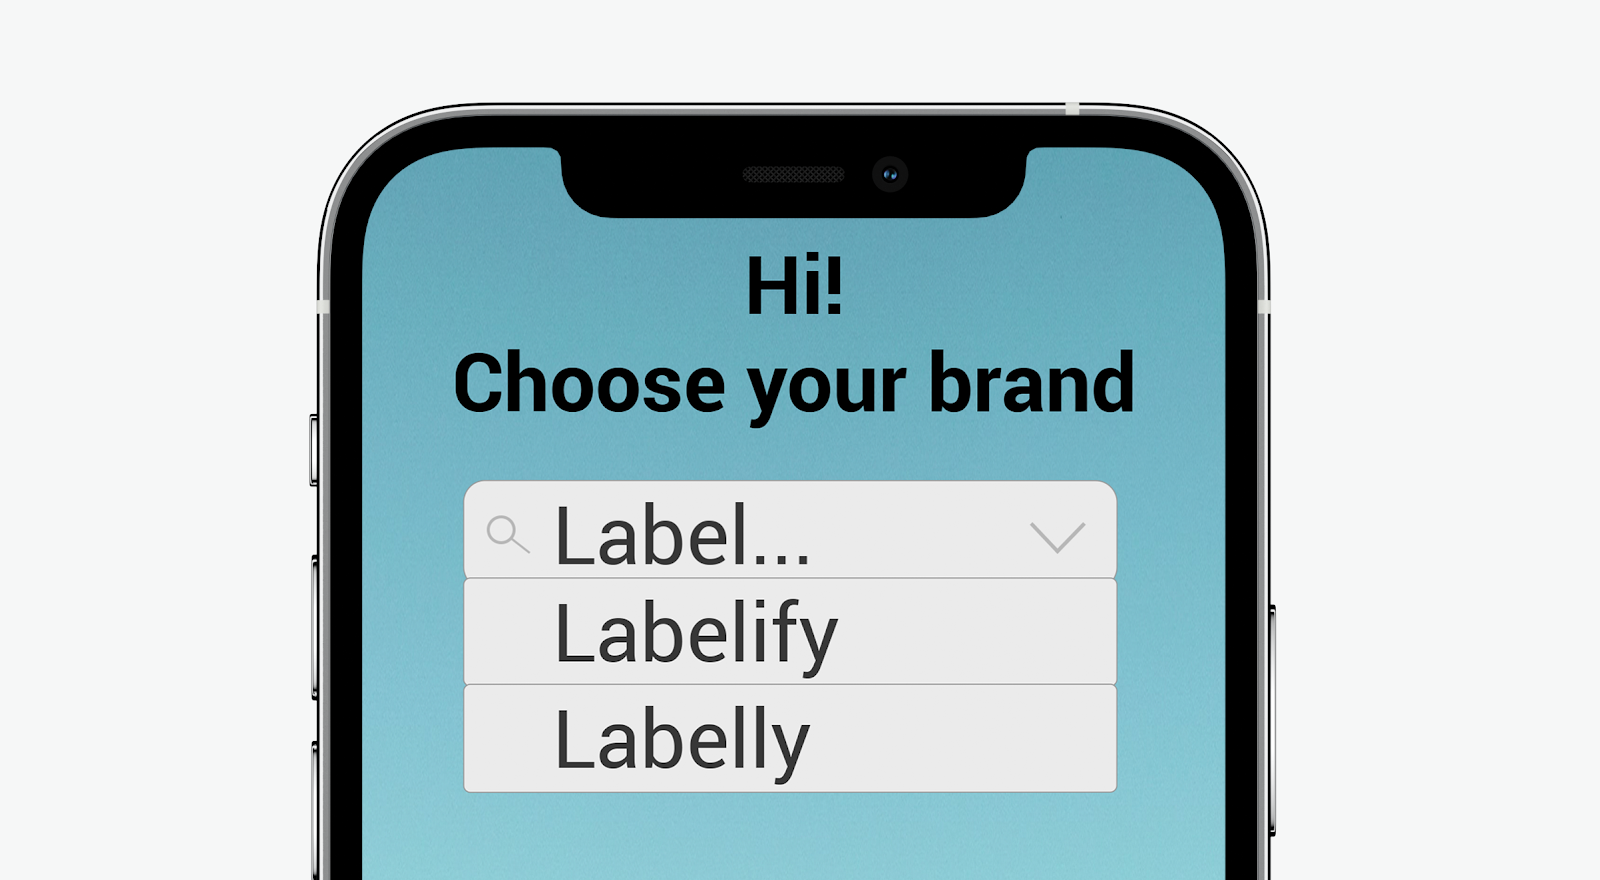 Hi! Choose your brand: Labelify; Labelly; Label...